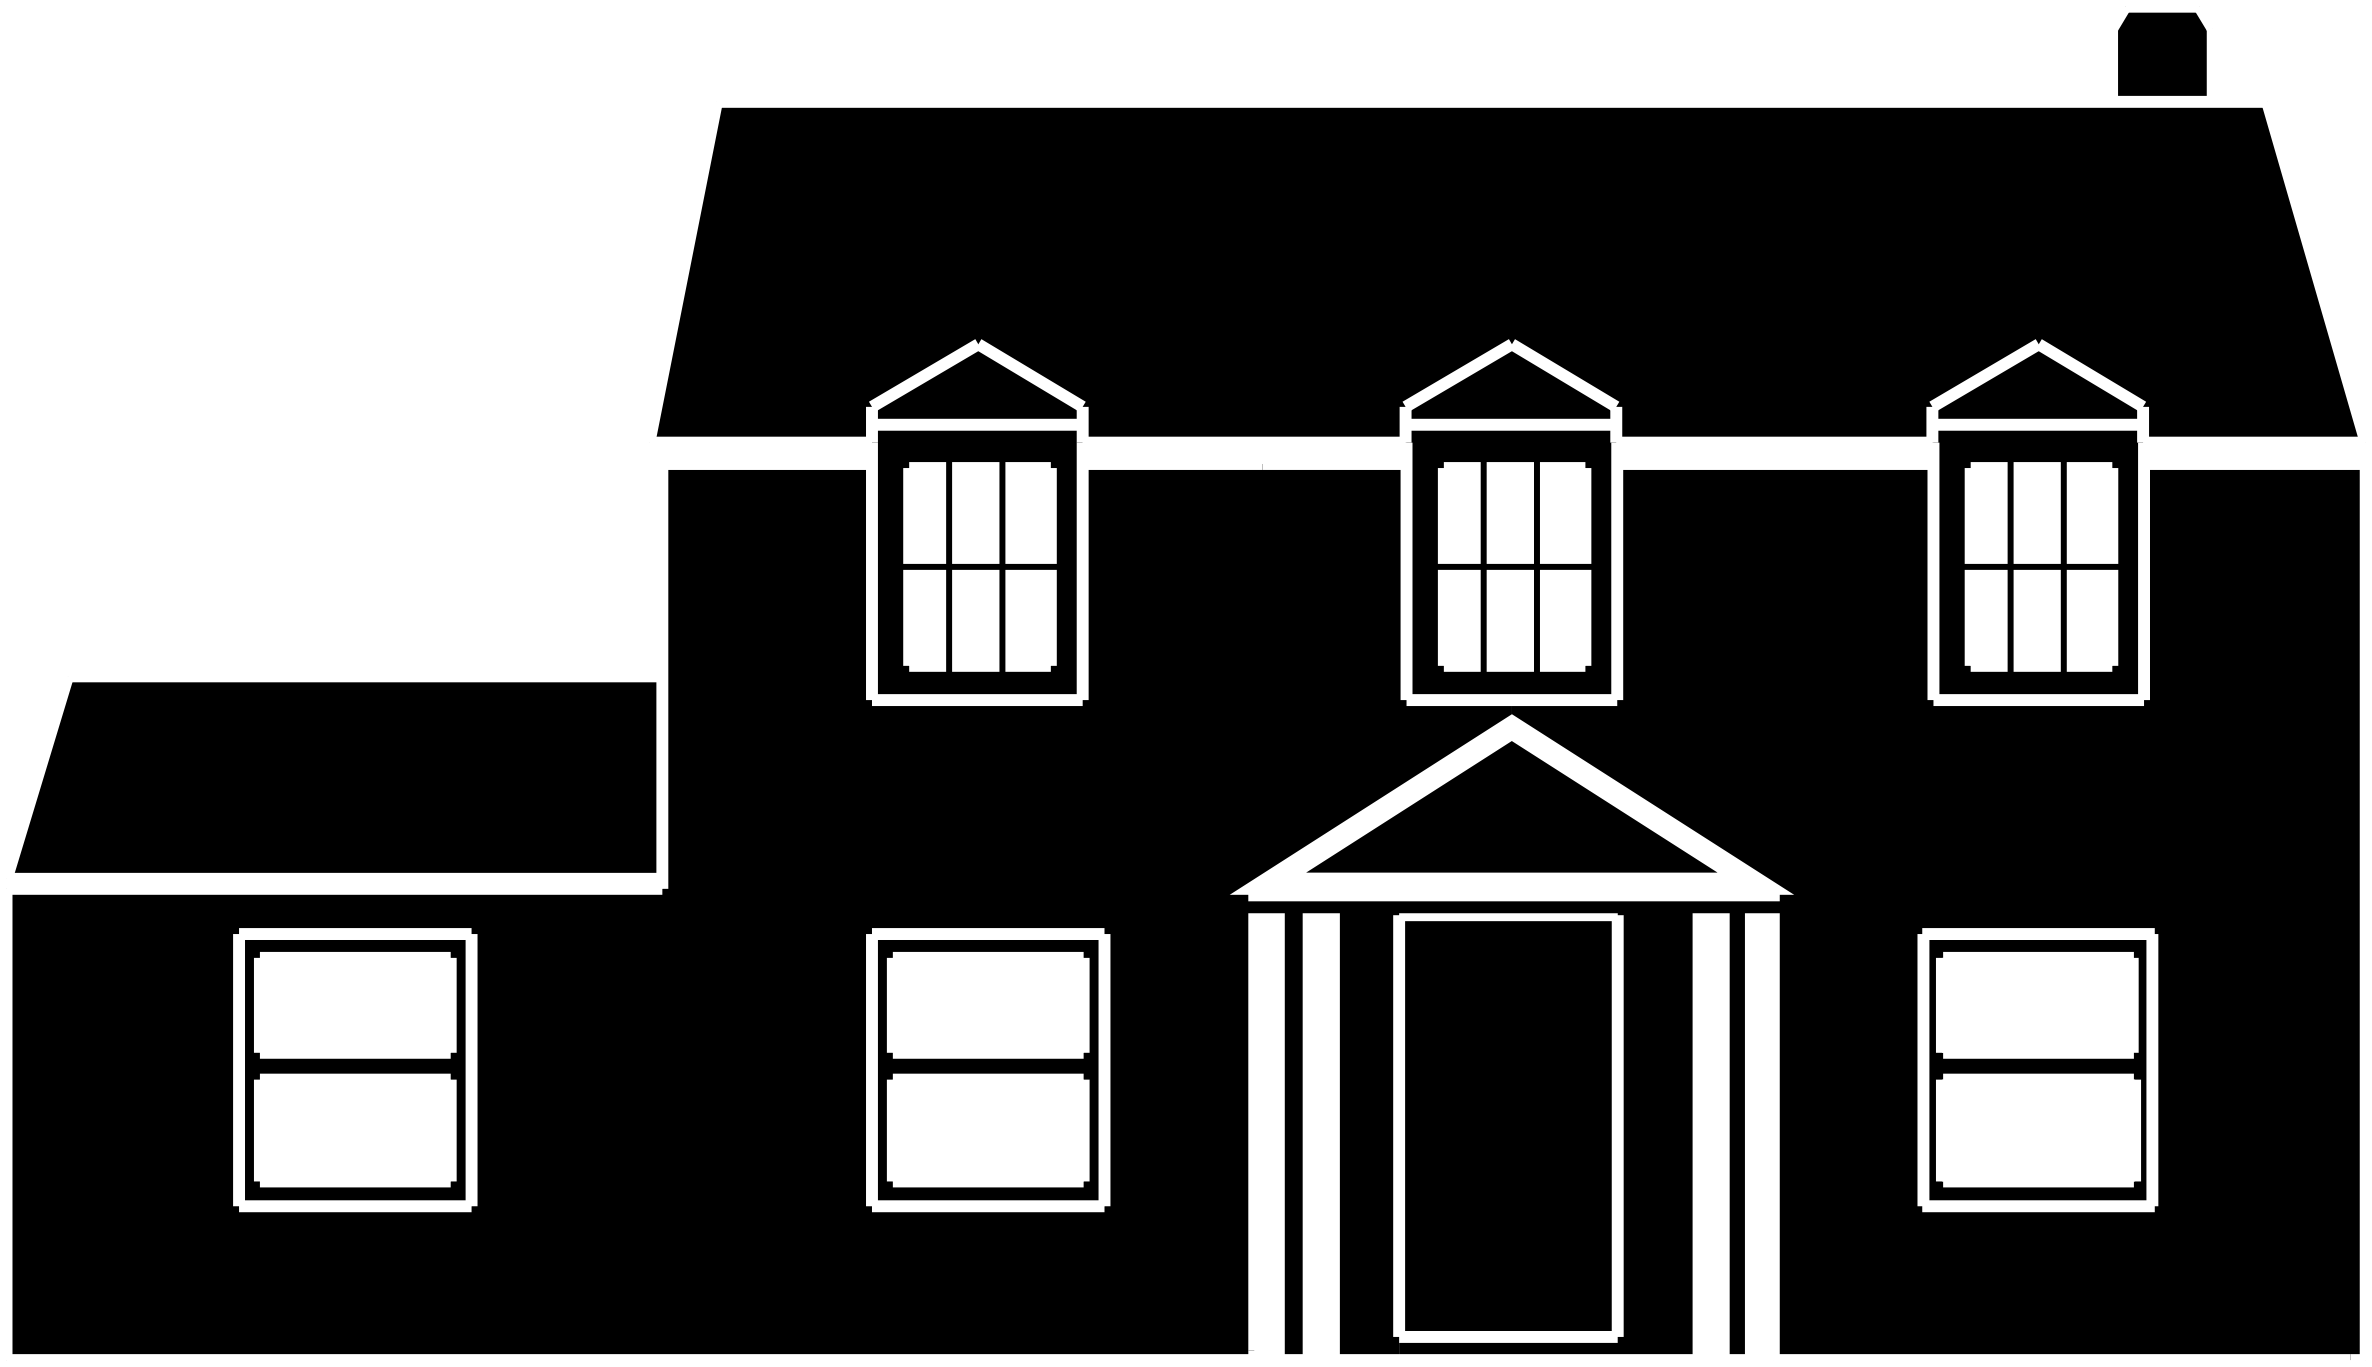 House clipart hous House white and and black